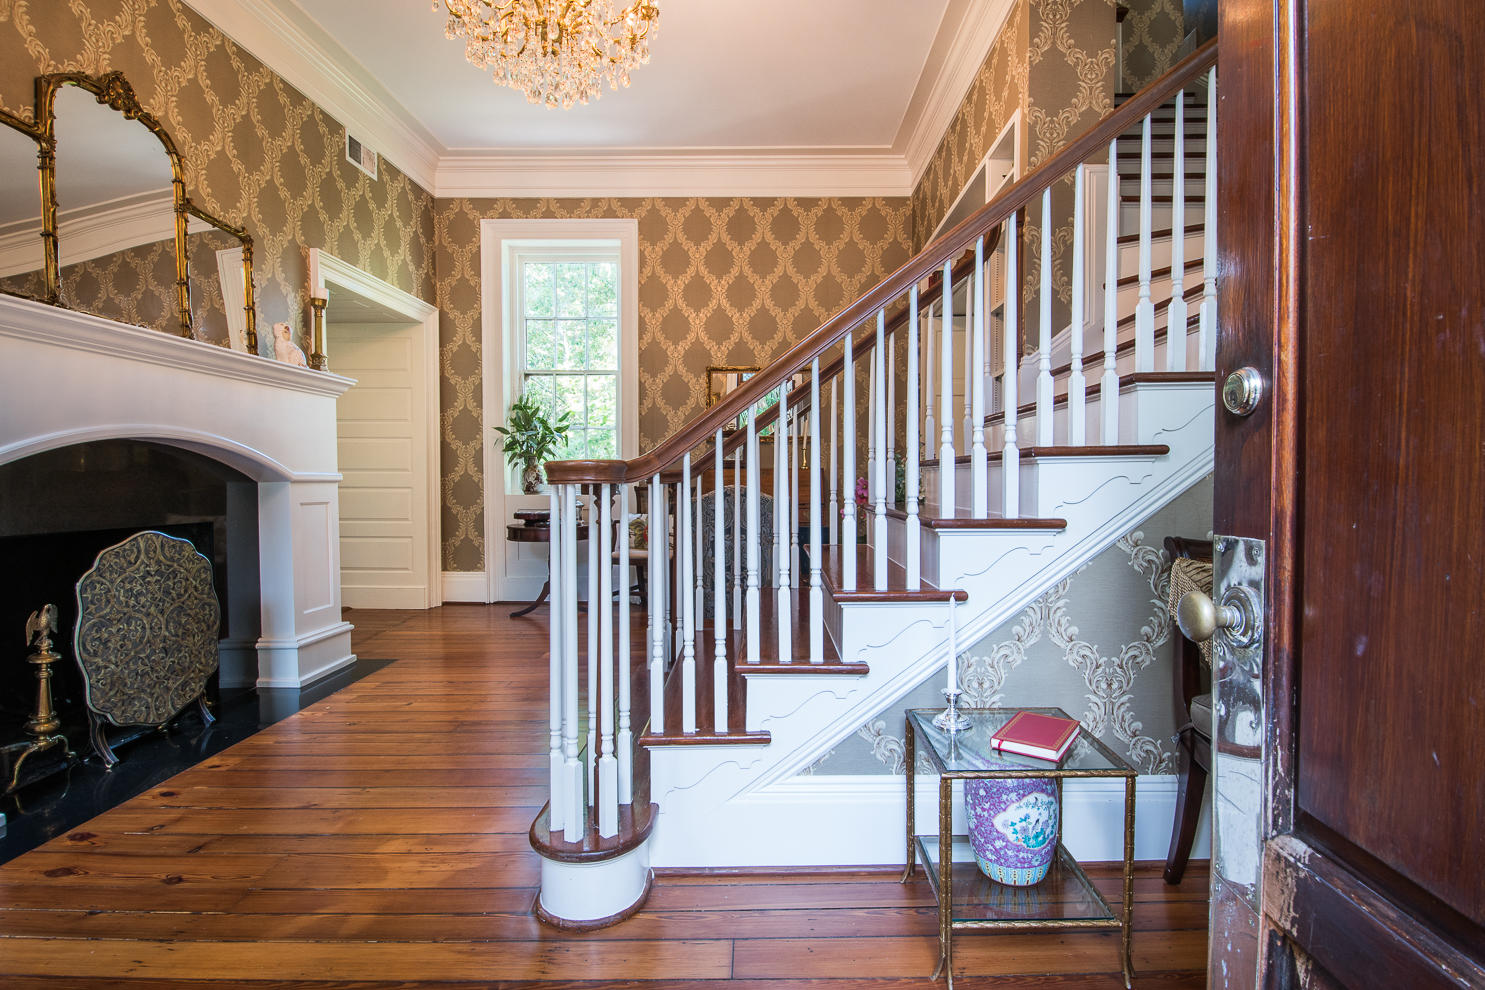 South of Broad Homes For Sale - 1 Prices, Charleston, SC - 4